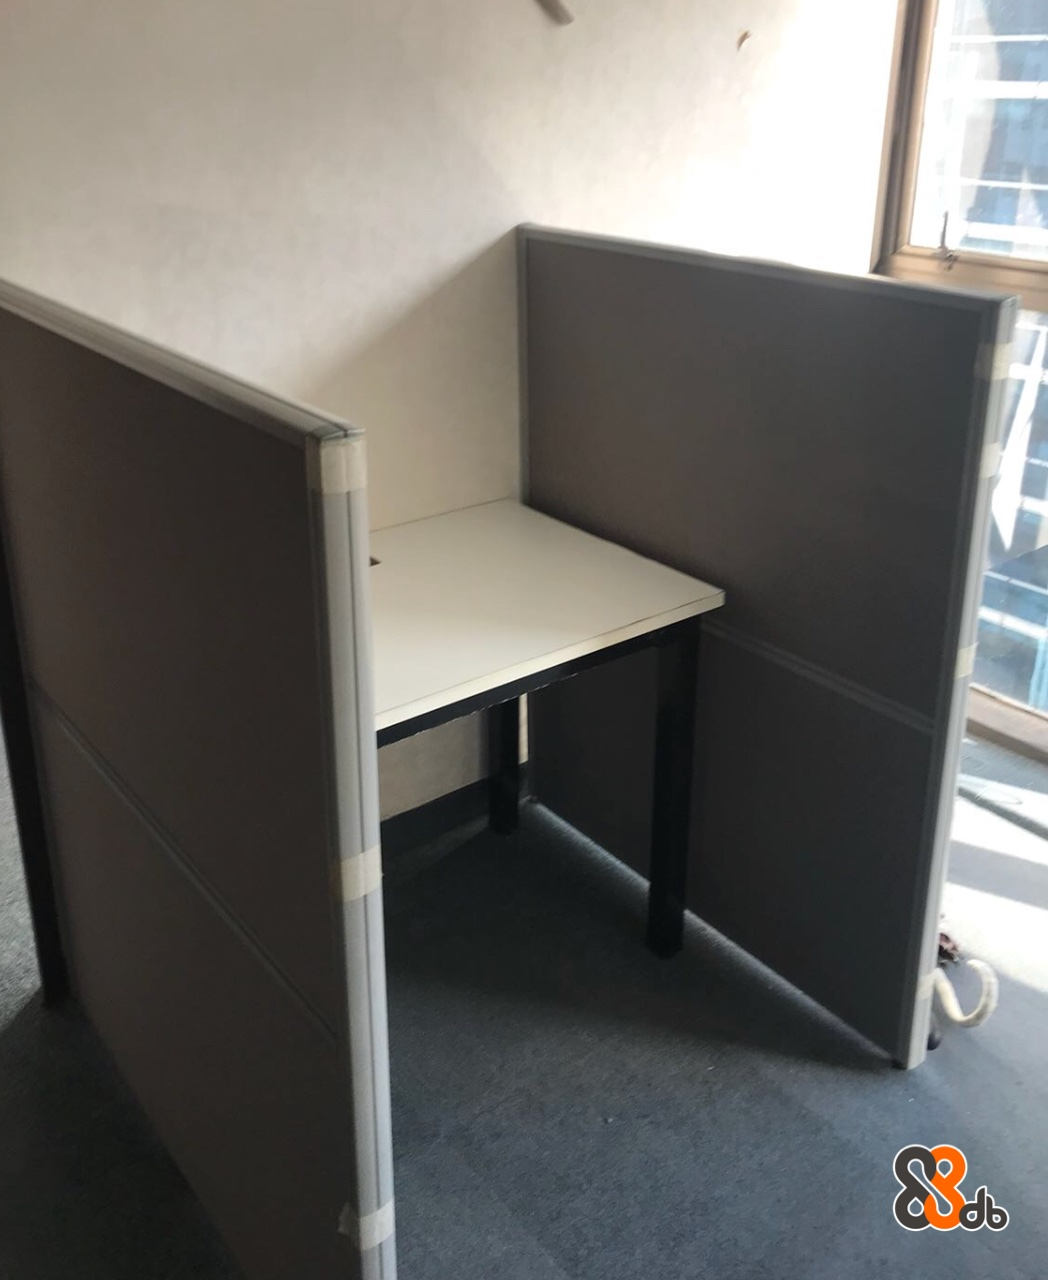 furniture,product,desk,table,chair